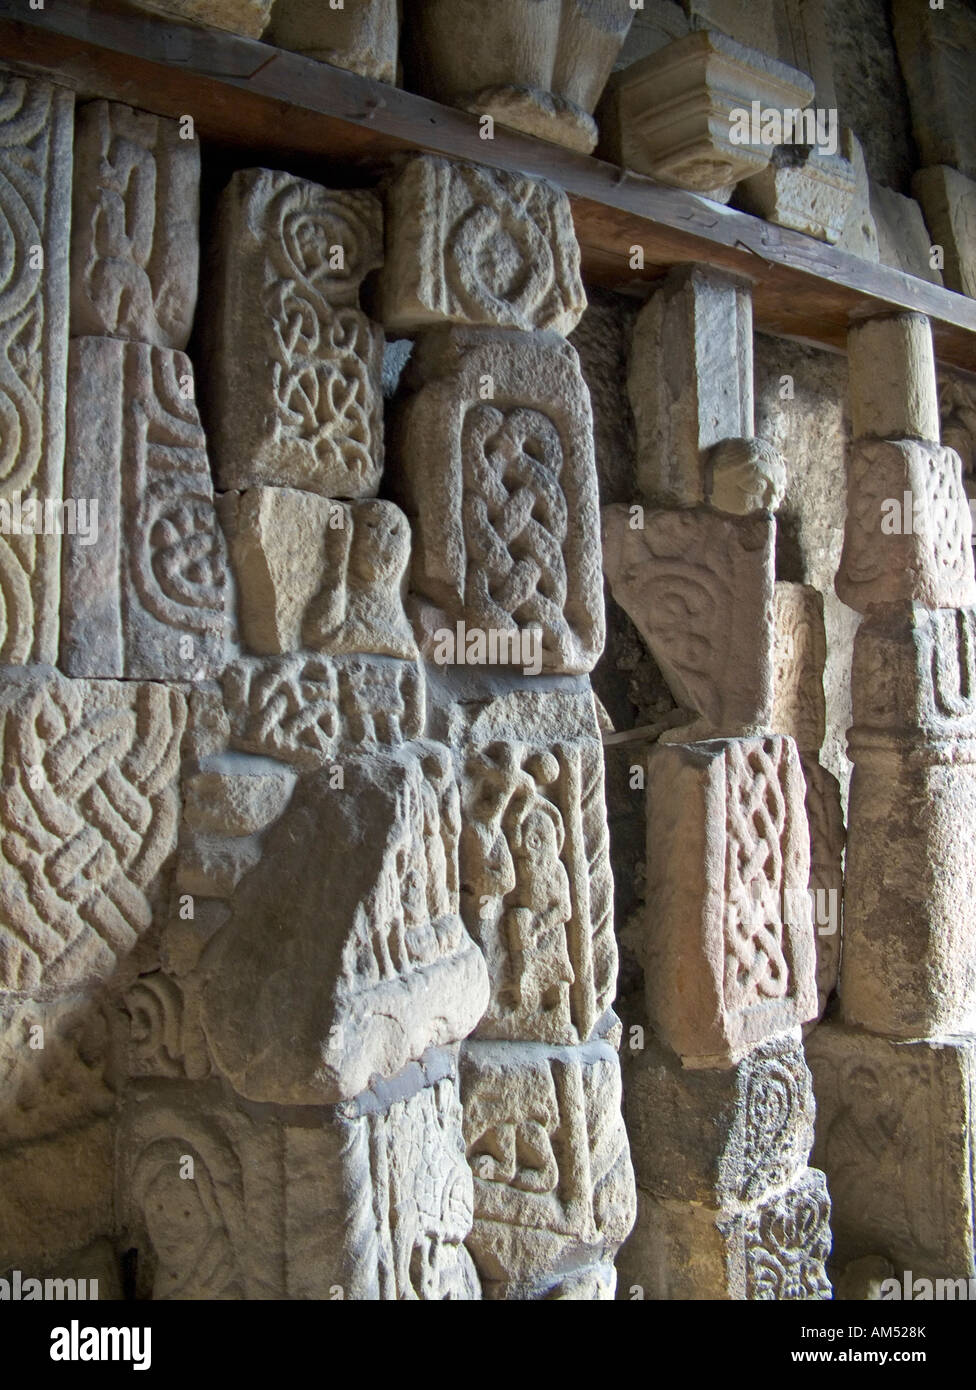 Anglo saxon and norman stone carvings in the entrance to